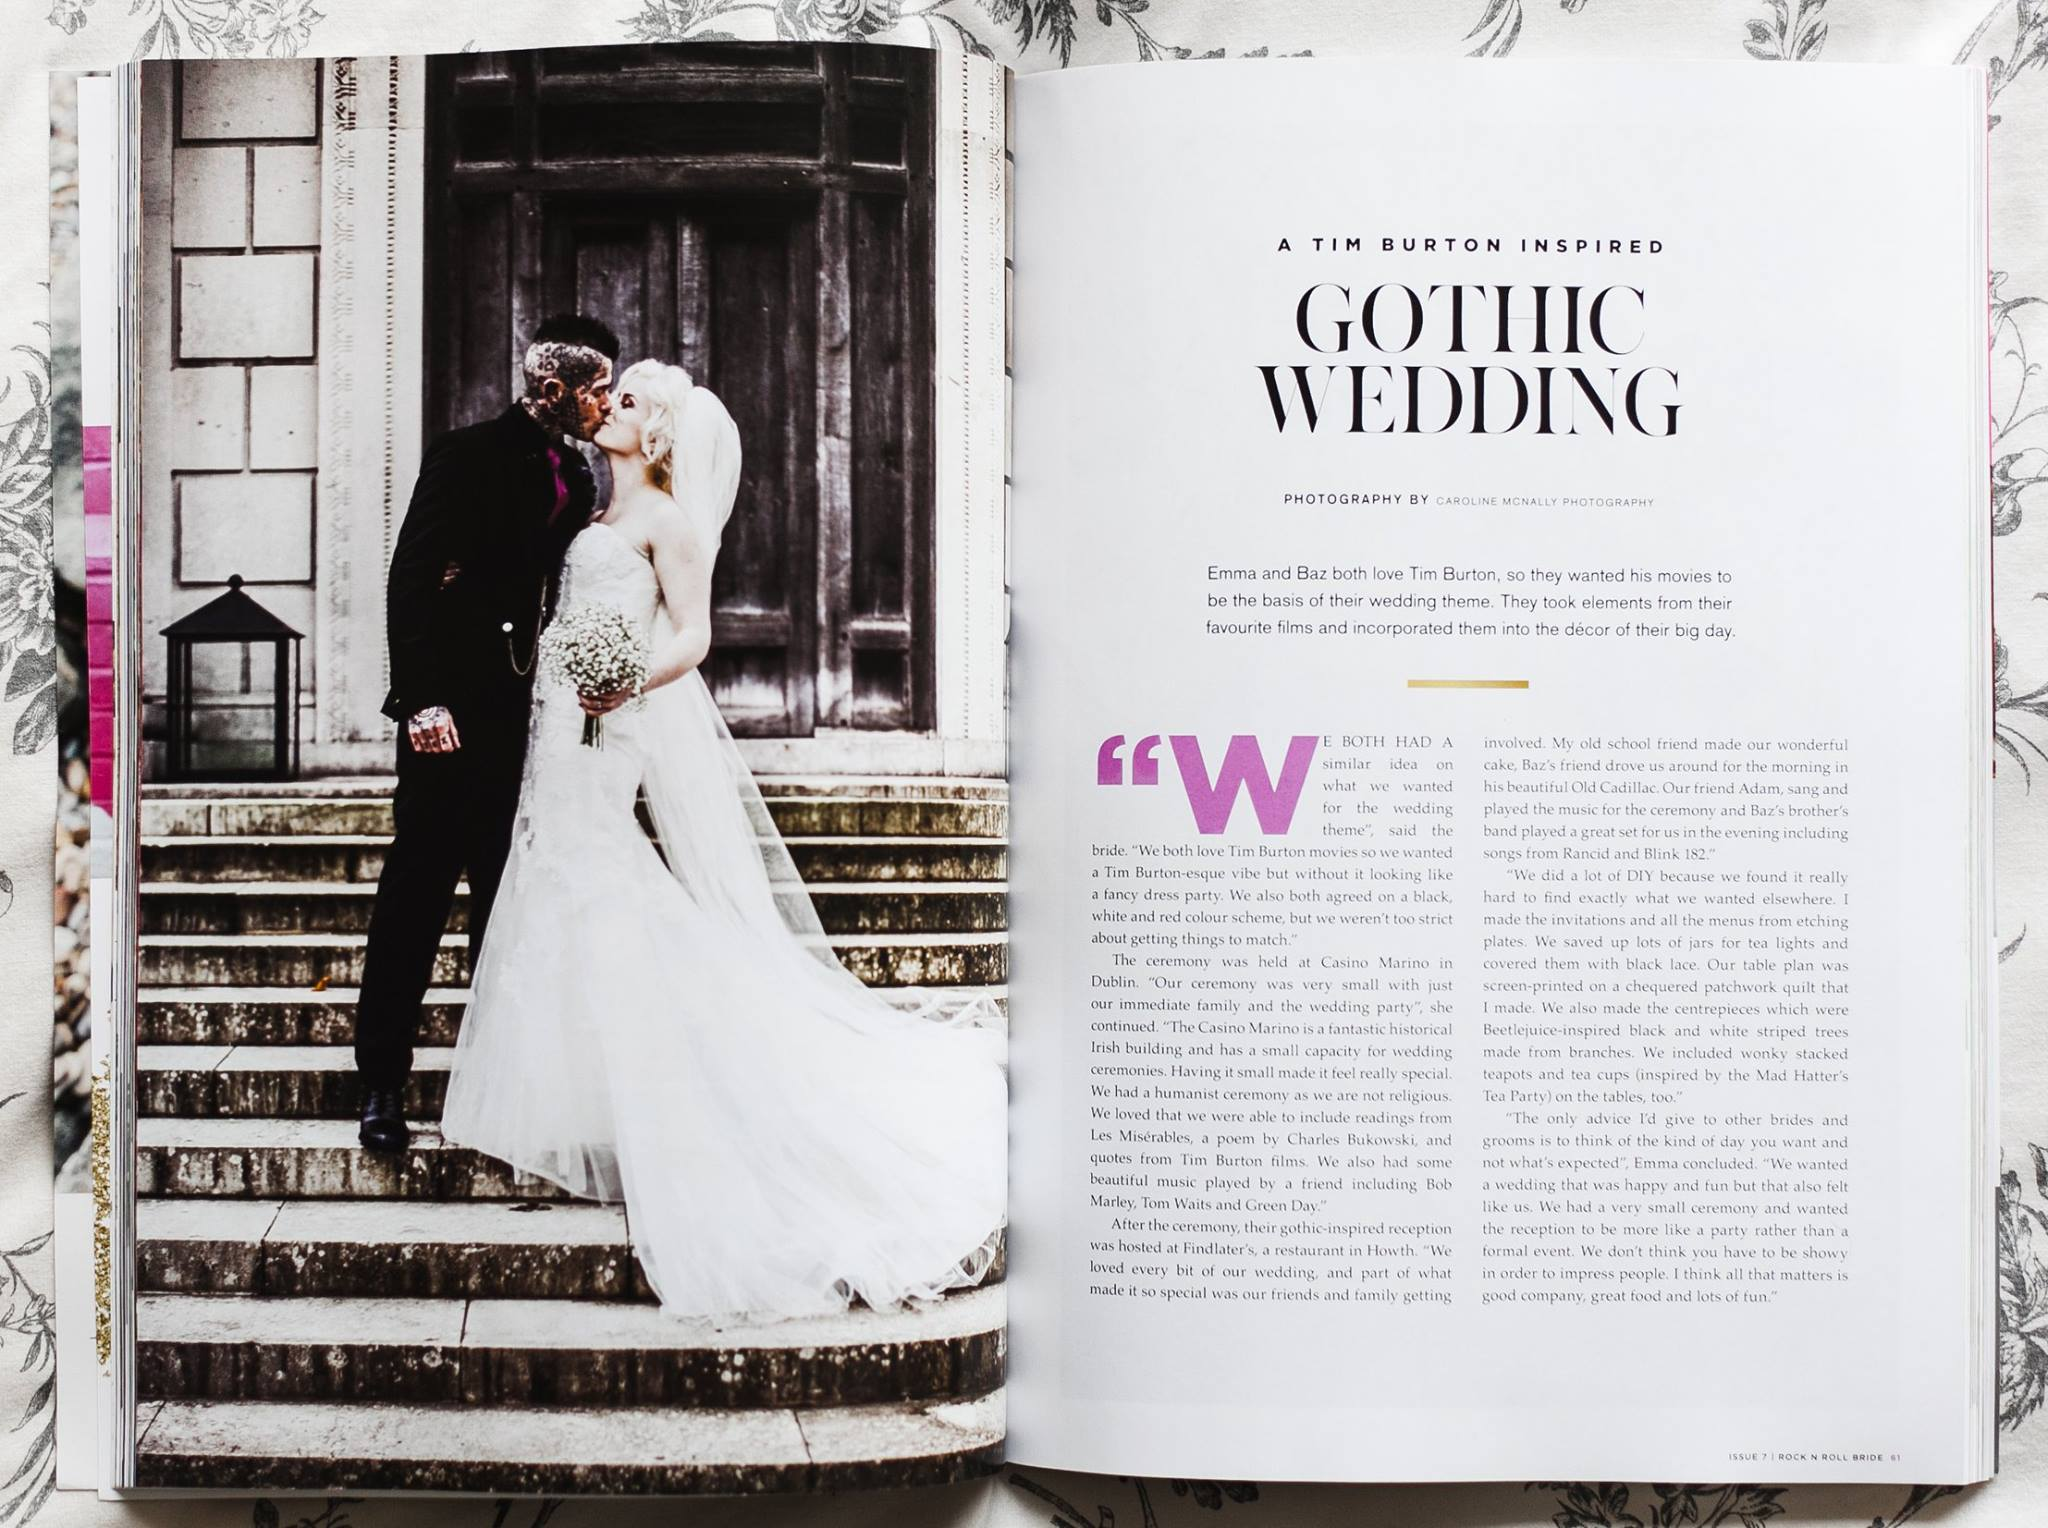 Tim burton inspired Gothic wedding by wild things wed